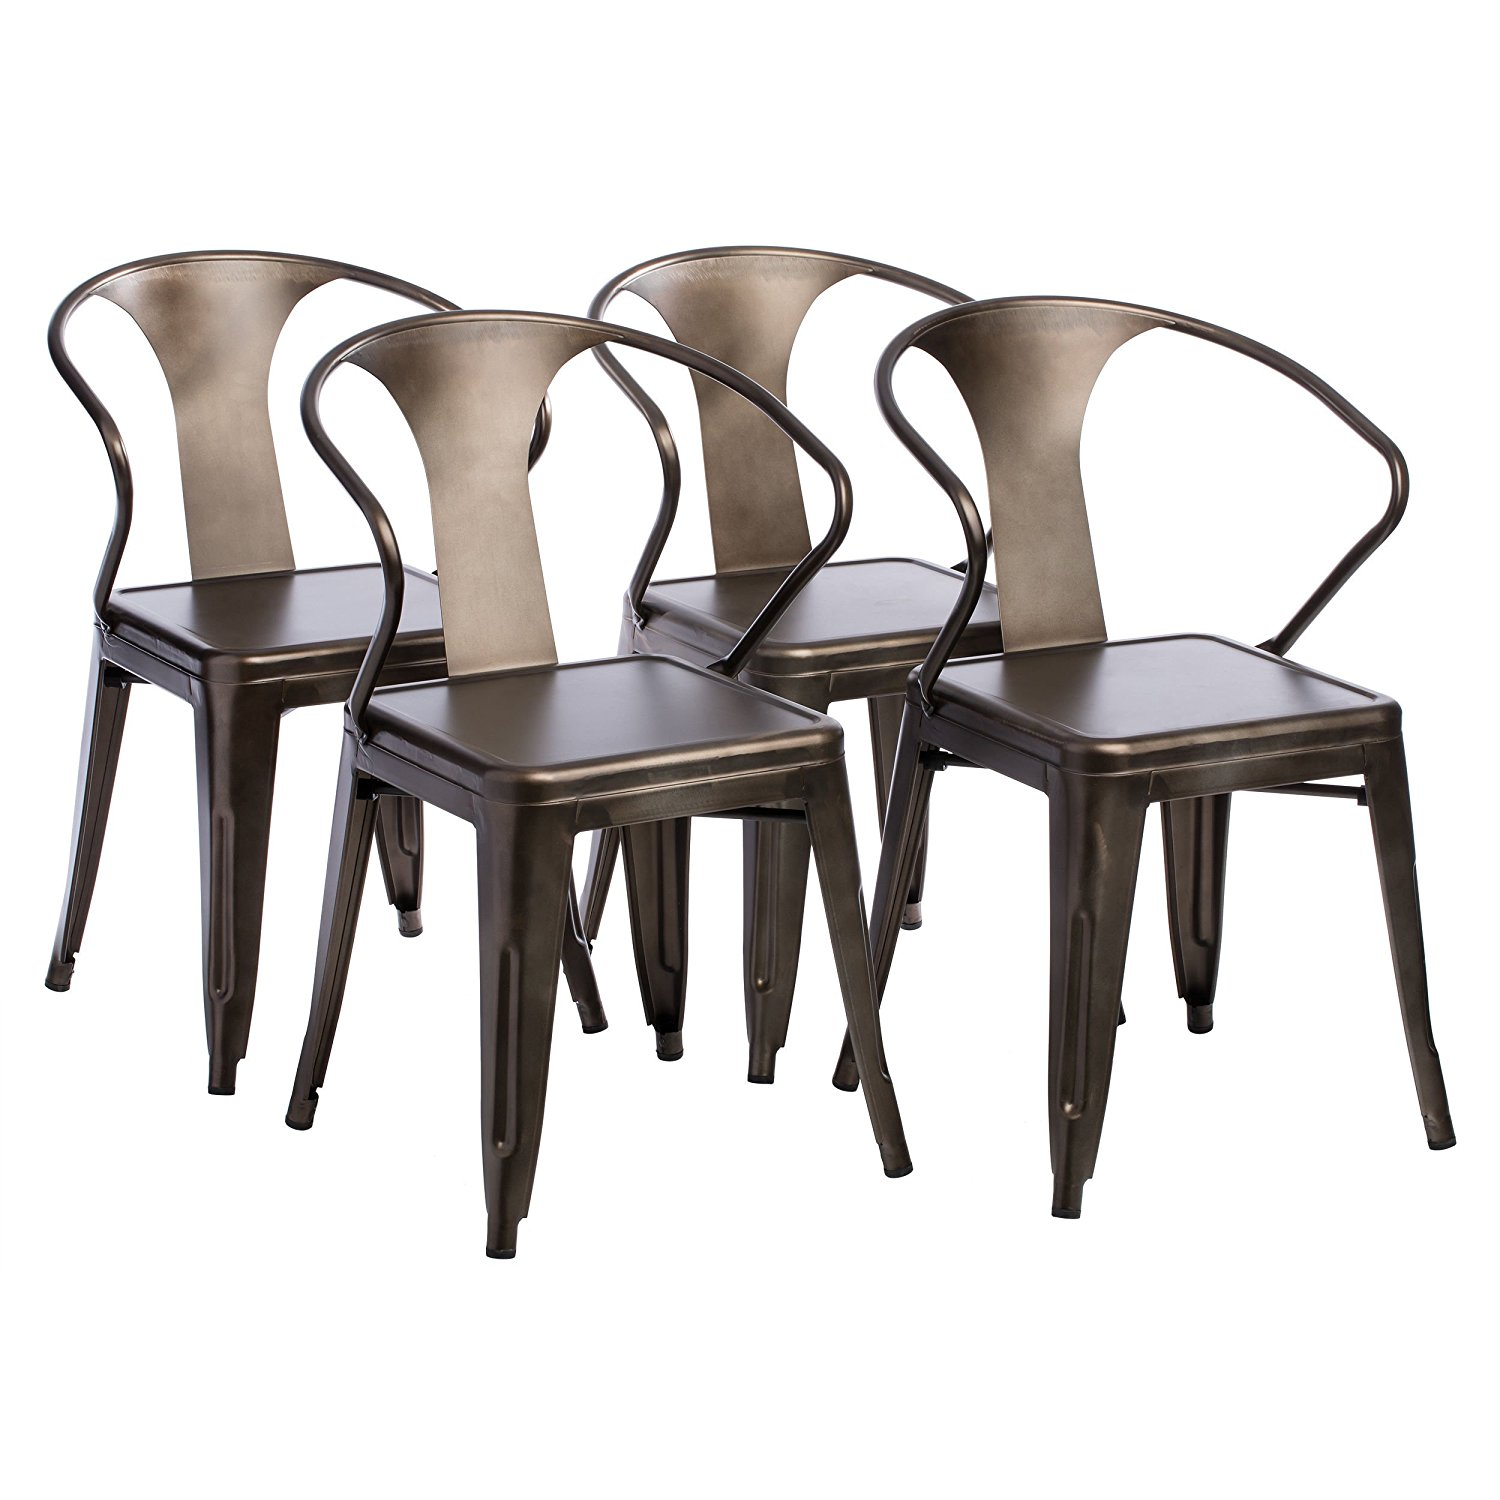 Charmant Get Quotations · Vintage Tabouret Stacking Chairs (set Of 4)